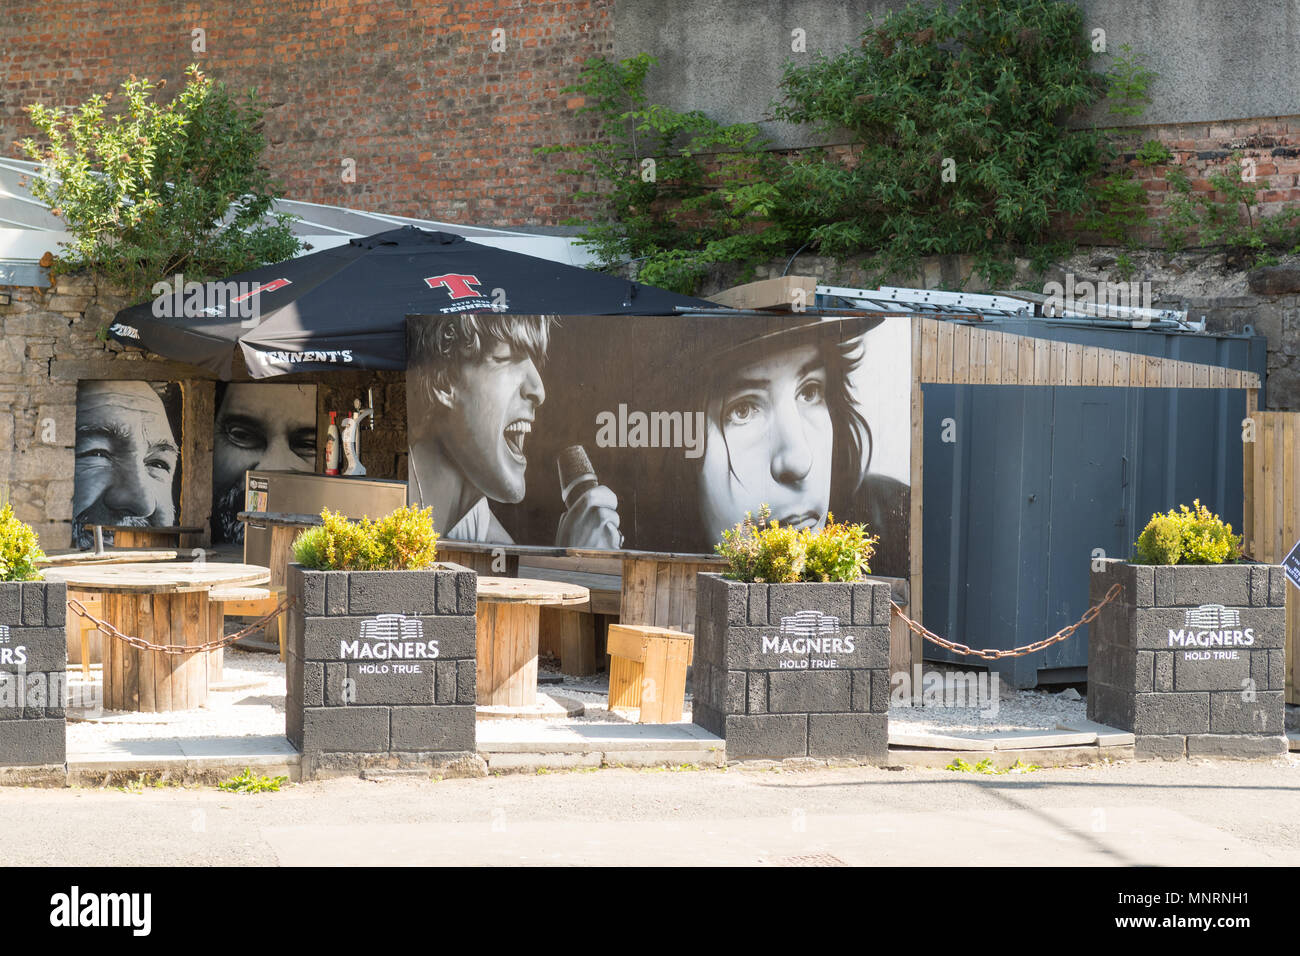 The Clutha beer garden, Glasgow, Scotland, UK - Stock Image